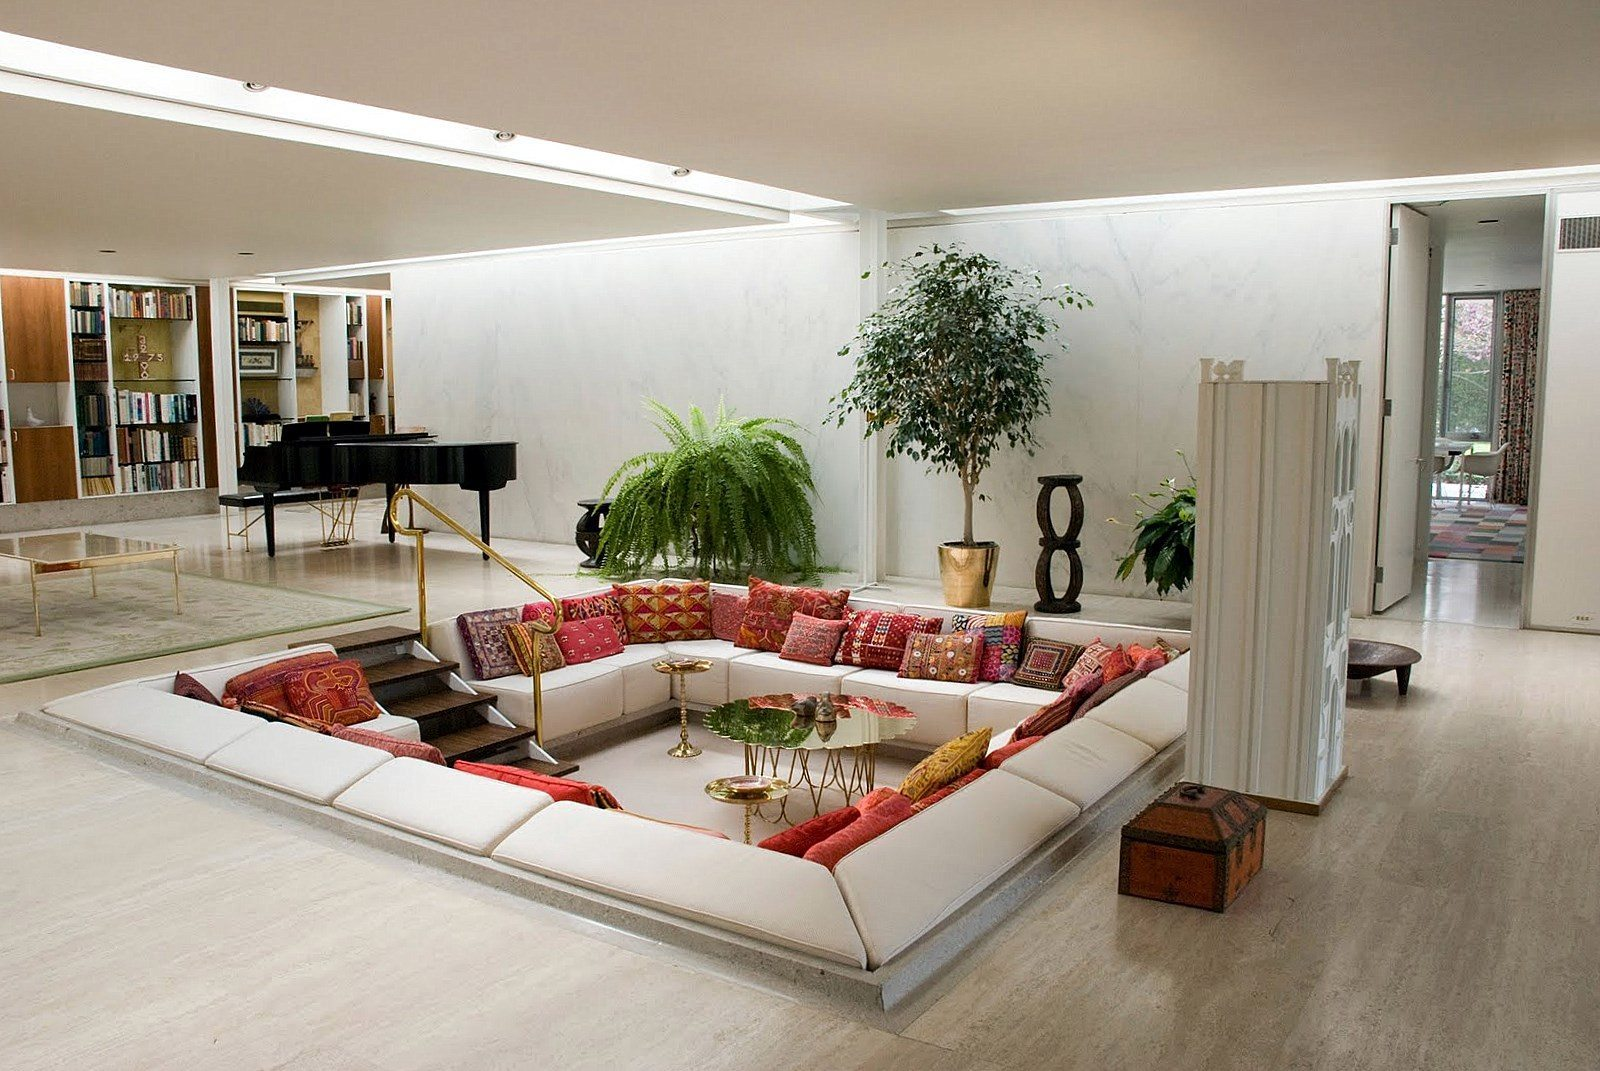 Captivating Floor Seating White Sofas In The Middle Of The Room